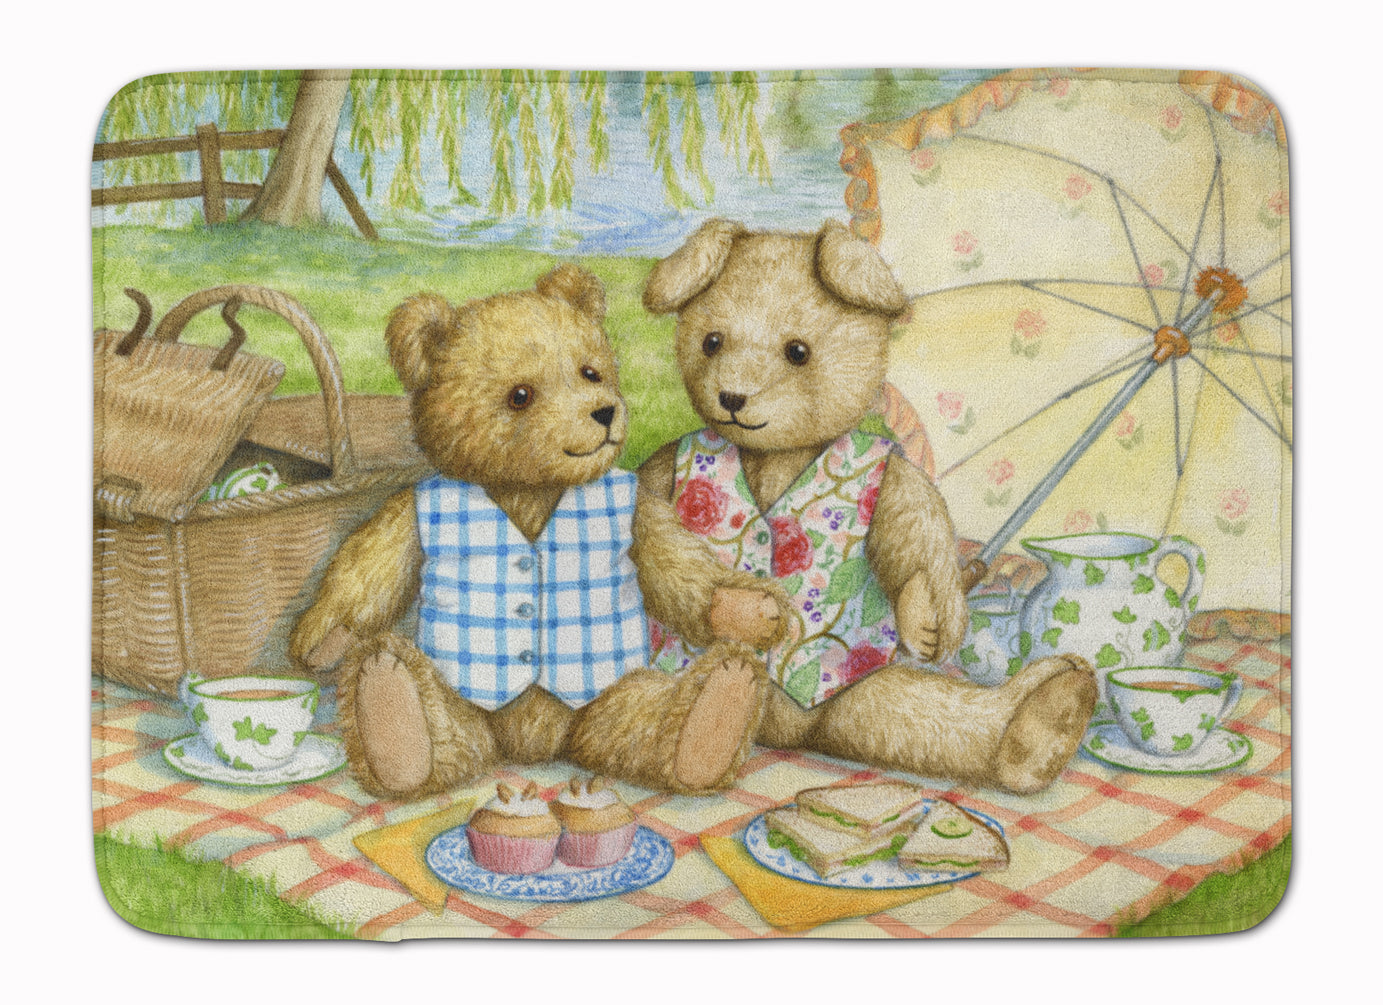 Summertime Teddy Bears Picnic Machine Washable Memory Foam Mat CDCO0308RUG by Caroline's Treasures